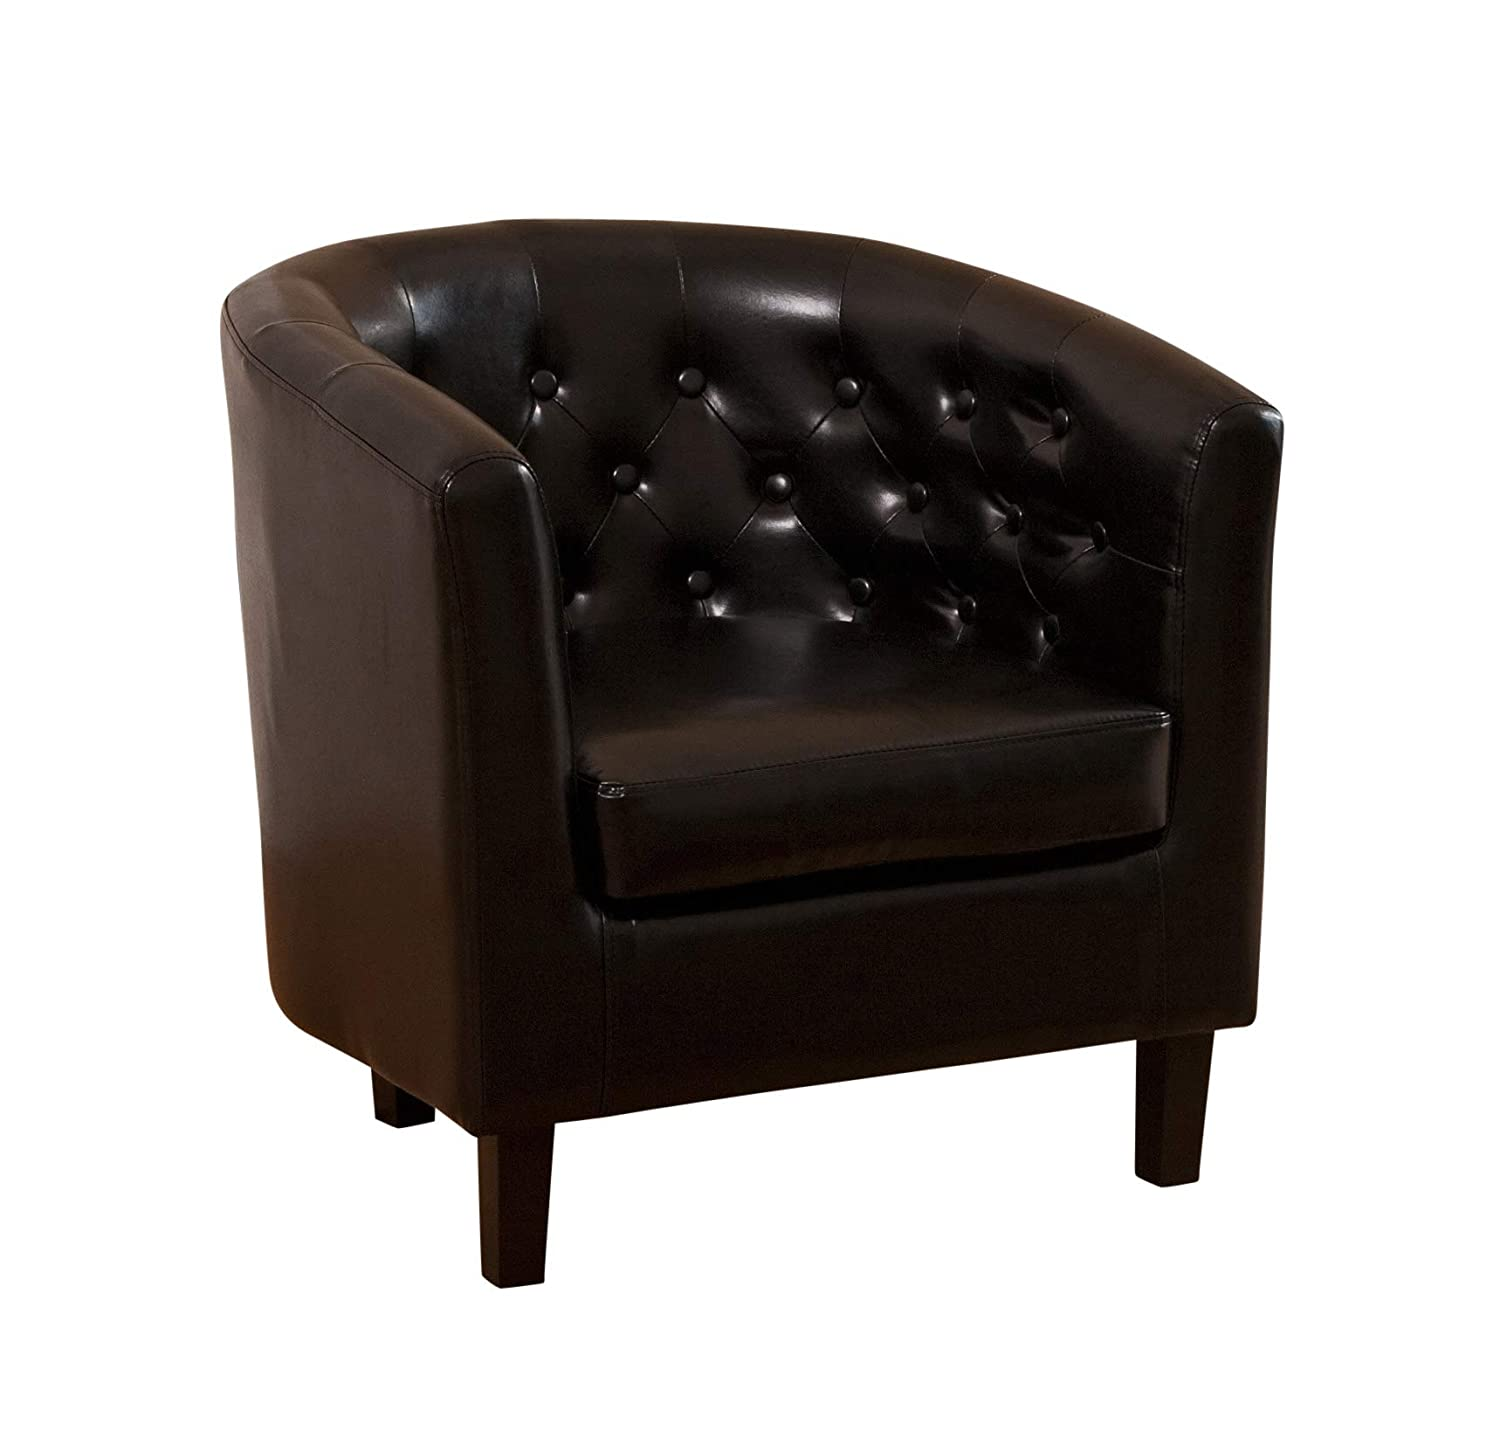 Sofa Collection Chesterfield Style Beauvais Tub Chair with Studded Back, Bonded Leather, Brown, 70 x 76 x 73 cm 5060363581207